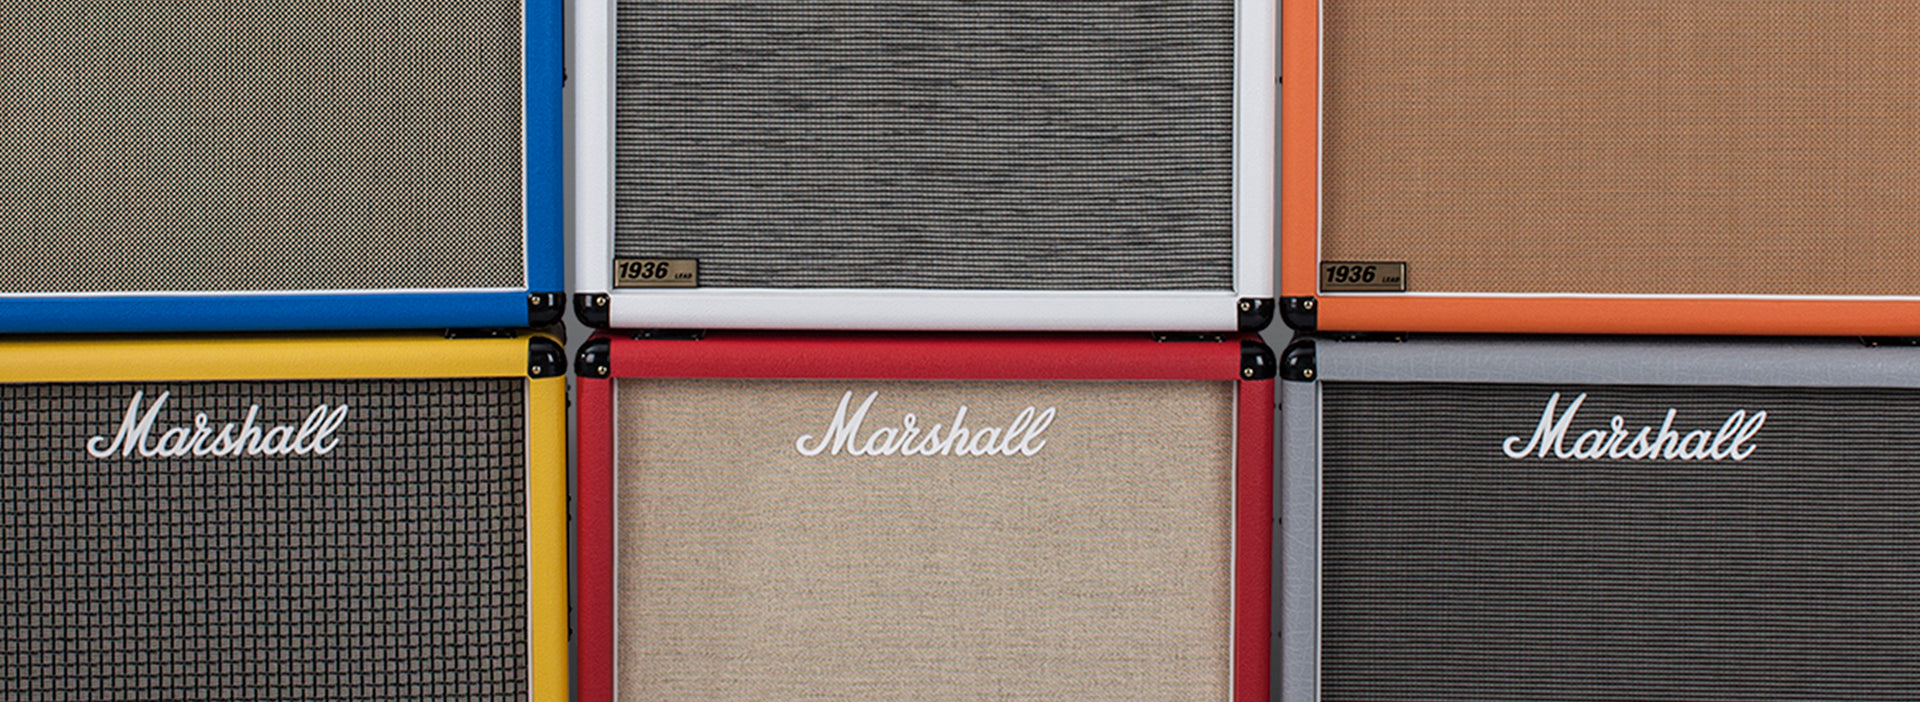 marshall-amps-amplificadores-color-coloridos-azmt-blog